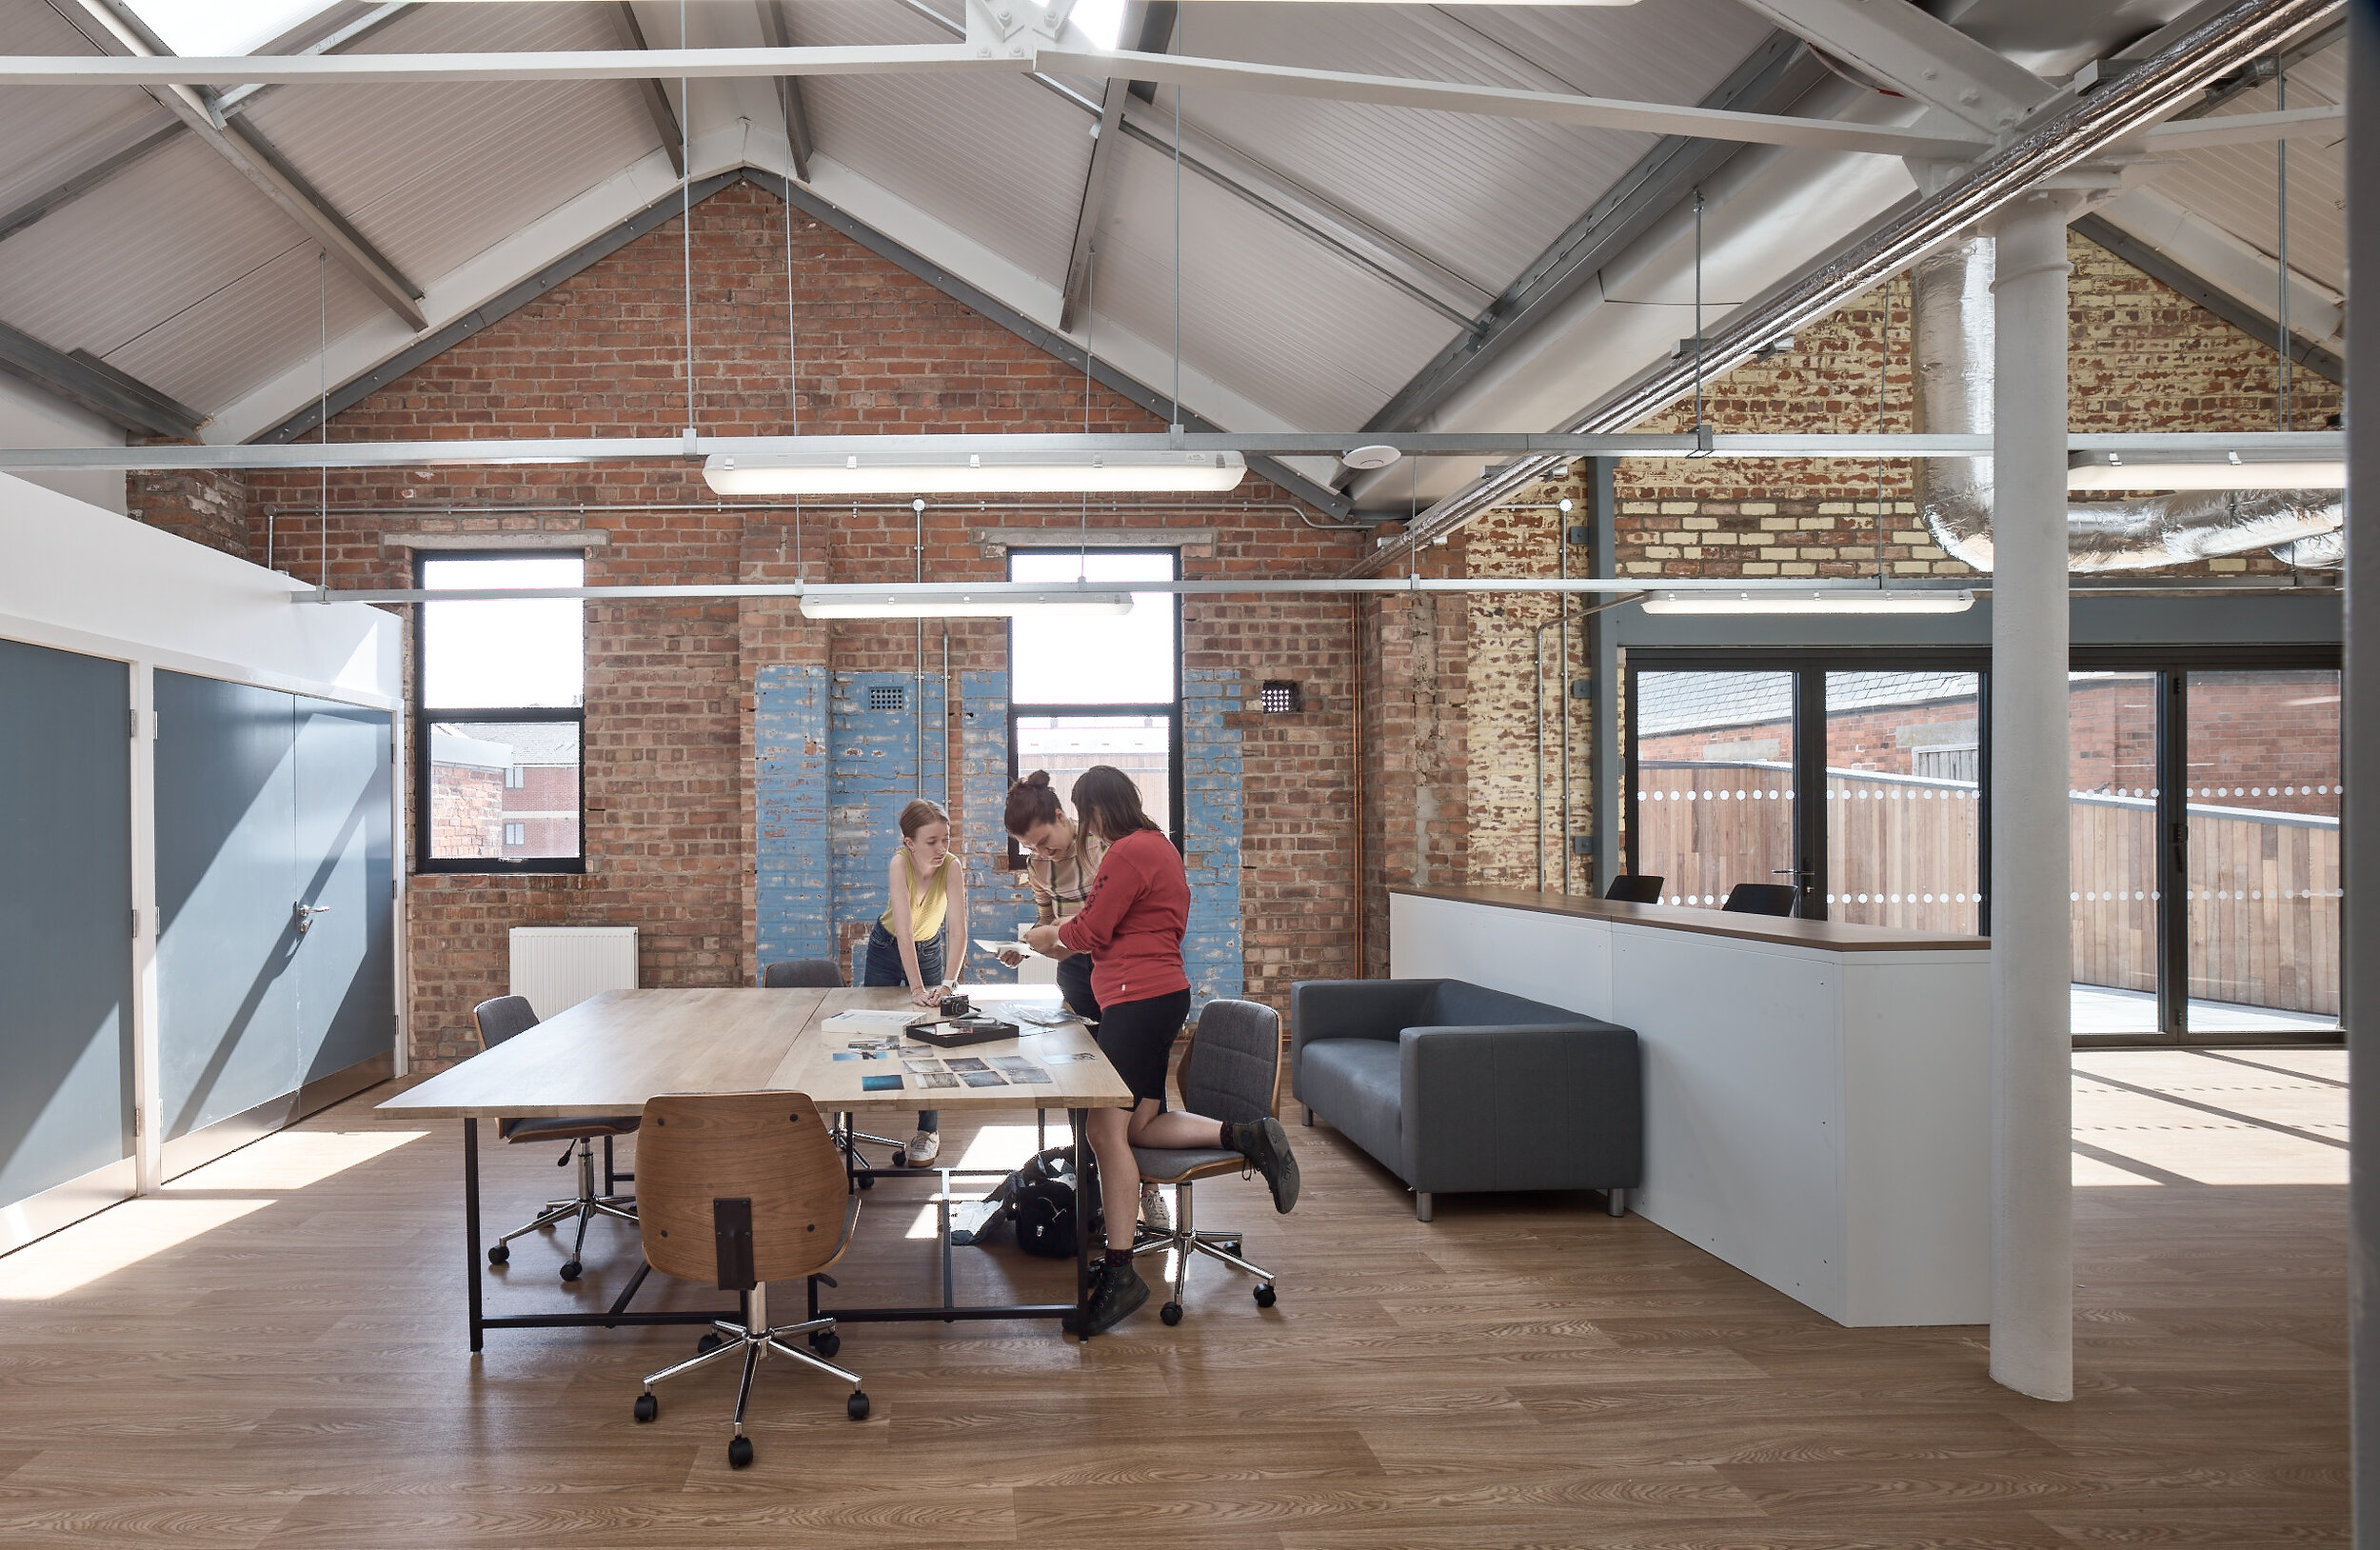 membership - Independence without isolation. Our membership is aimed towards creatives, artists and designers who want a creative workspace but don't necessarily need your own studio space.